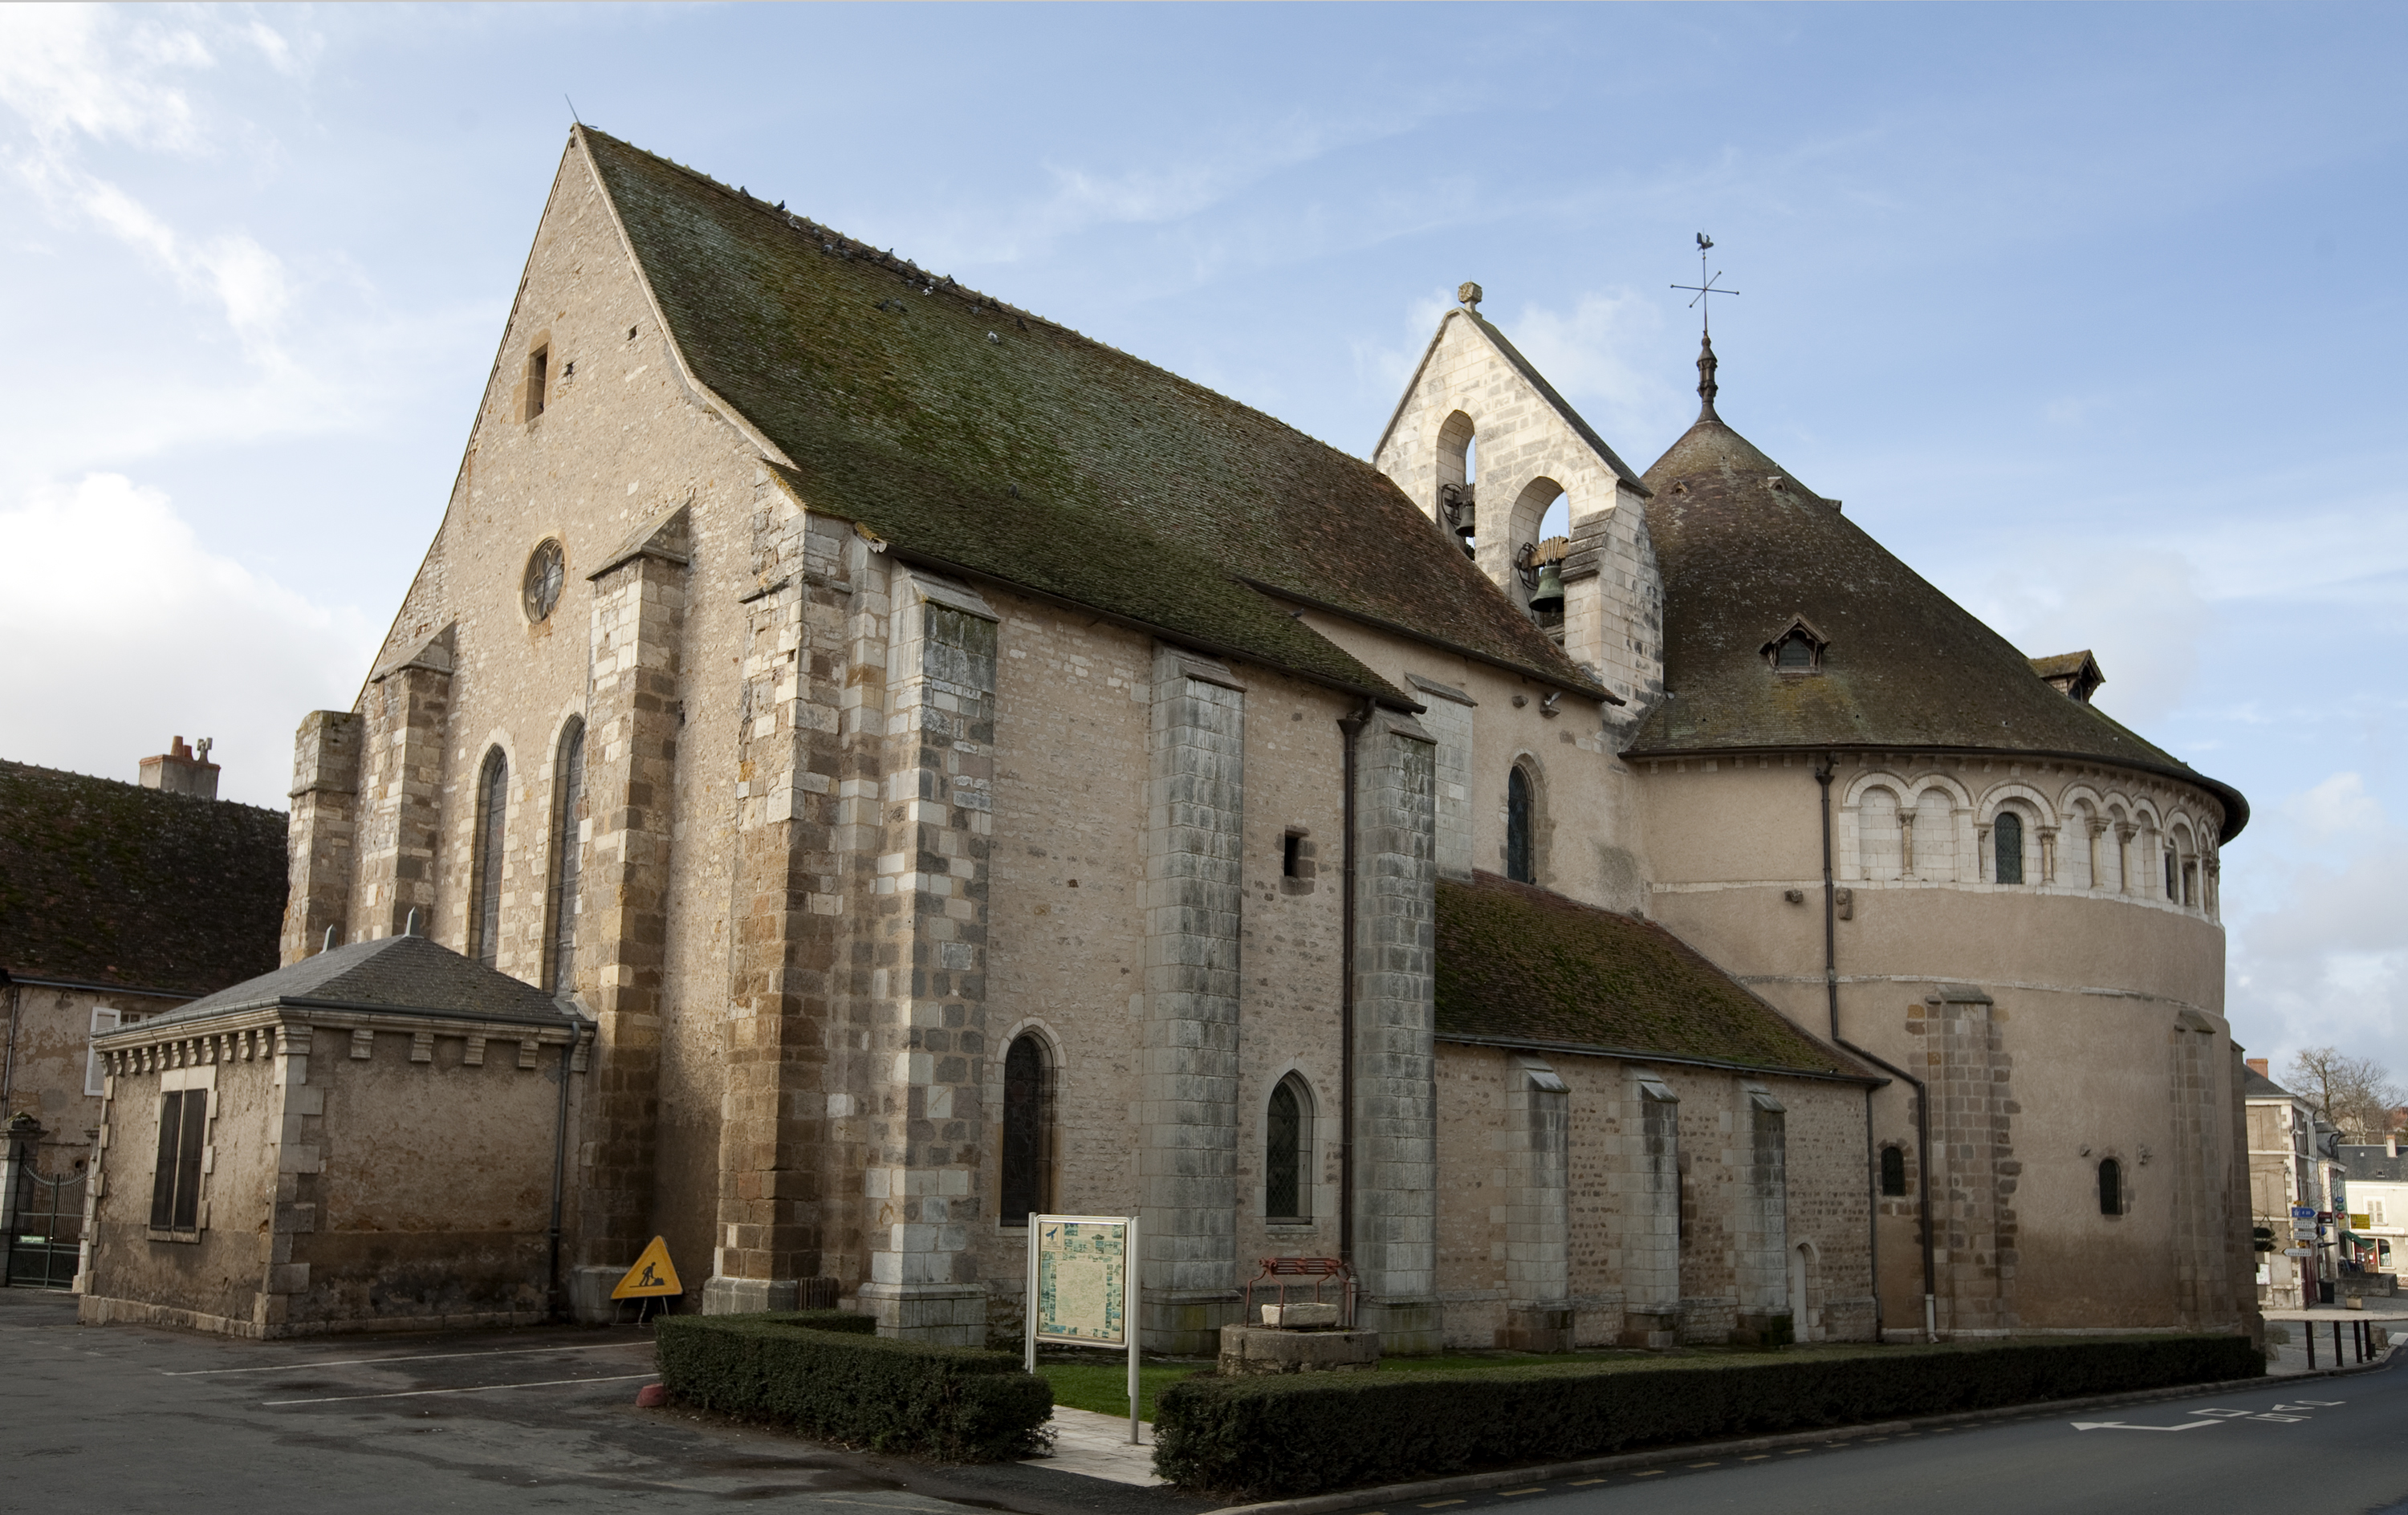 https://upload.wikimedia.org/wikipedia/commons/3/34/Neuvy-Saint-S%C3%A9pulchre%2C_Basilique_Saint-Jacques-le-Majeur_%28Coll%C3%A9giale_Saint-Etienne%29_PM_09565.jpg